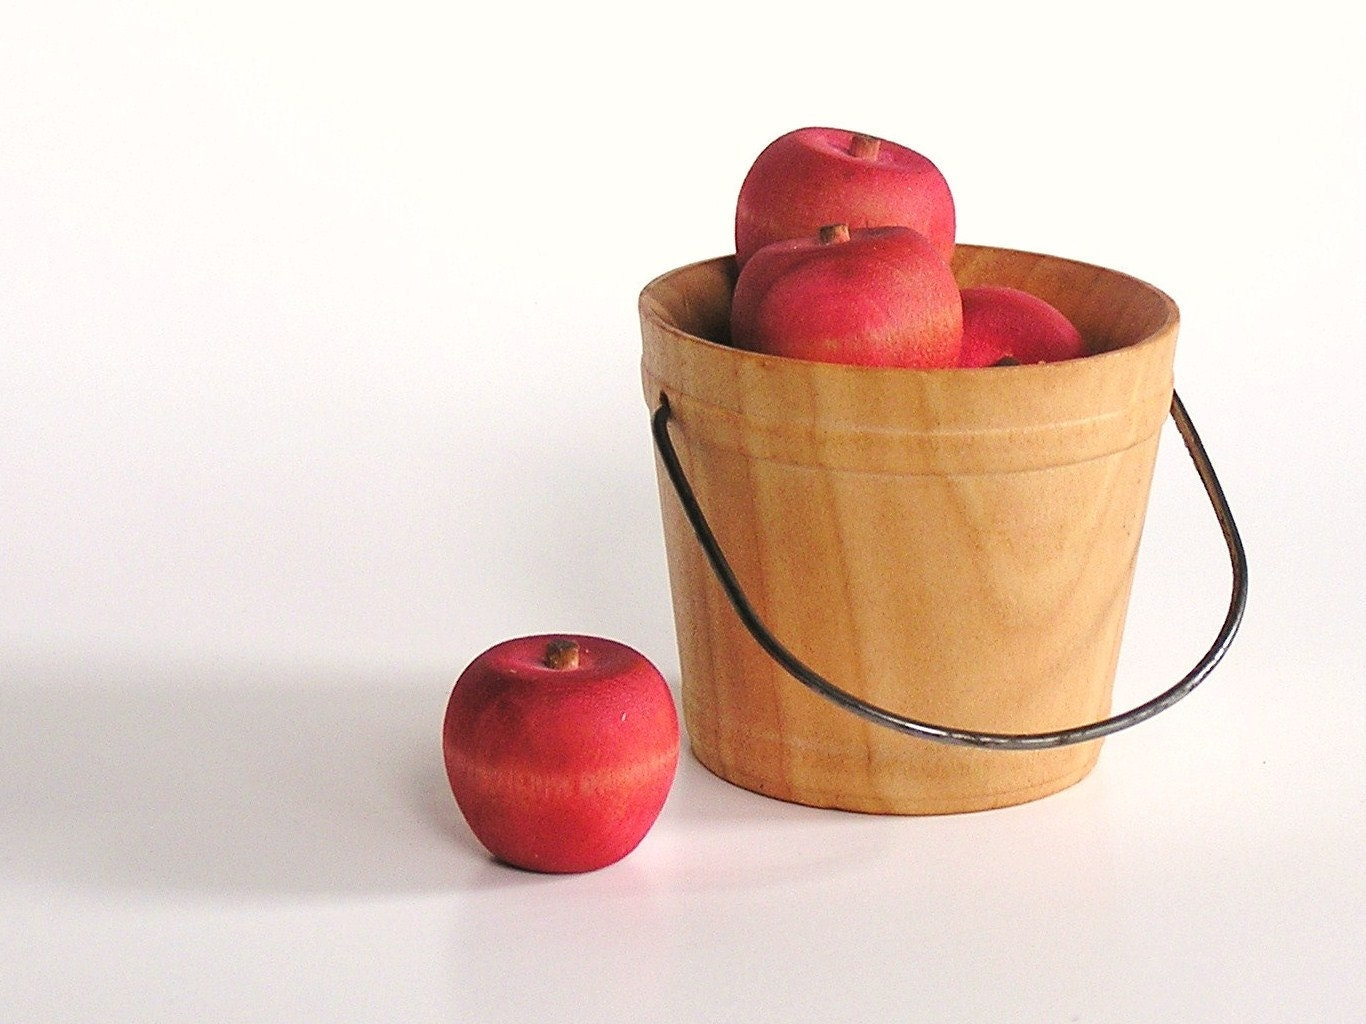 Wooden -Waldorf- Kids -Toy-Wood Toy- Autumn Harvest Apples - applenamos